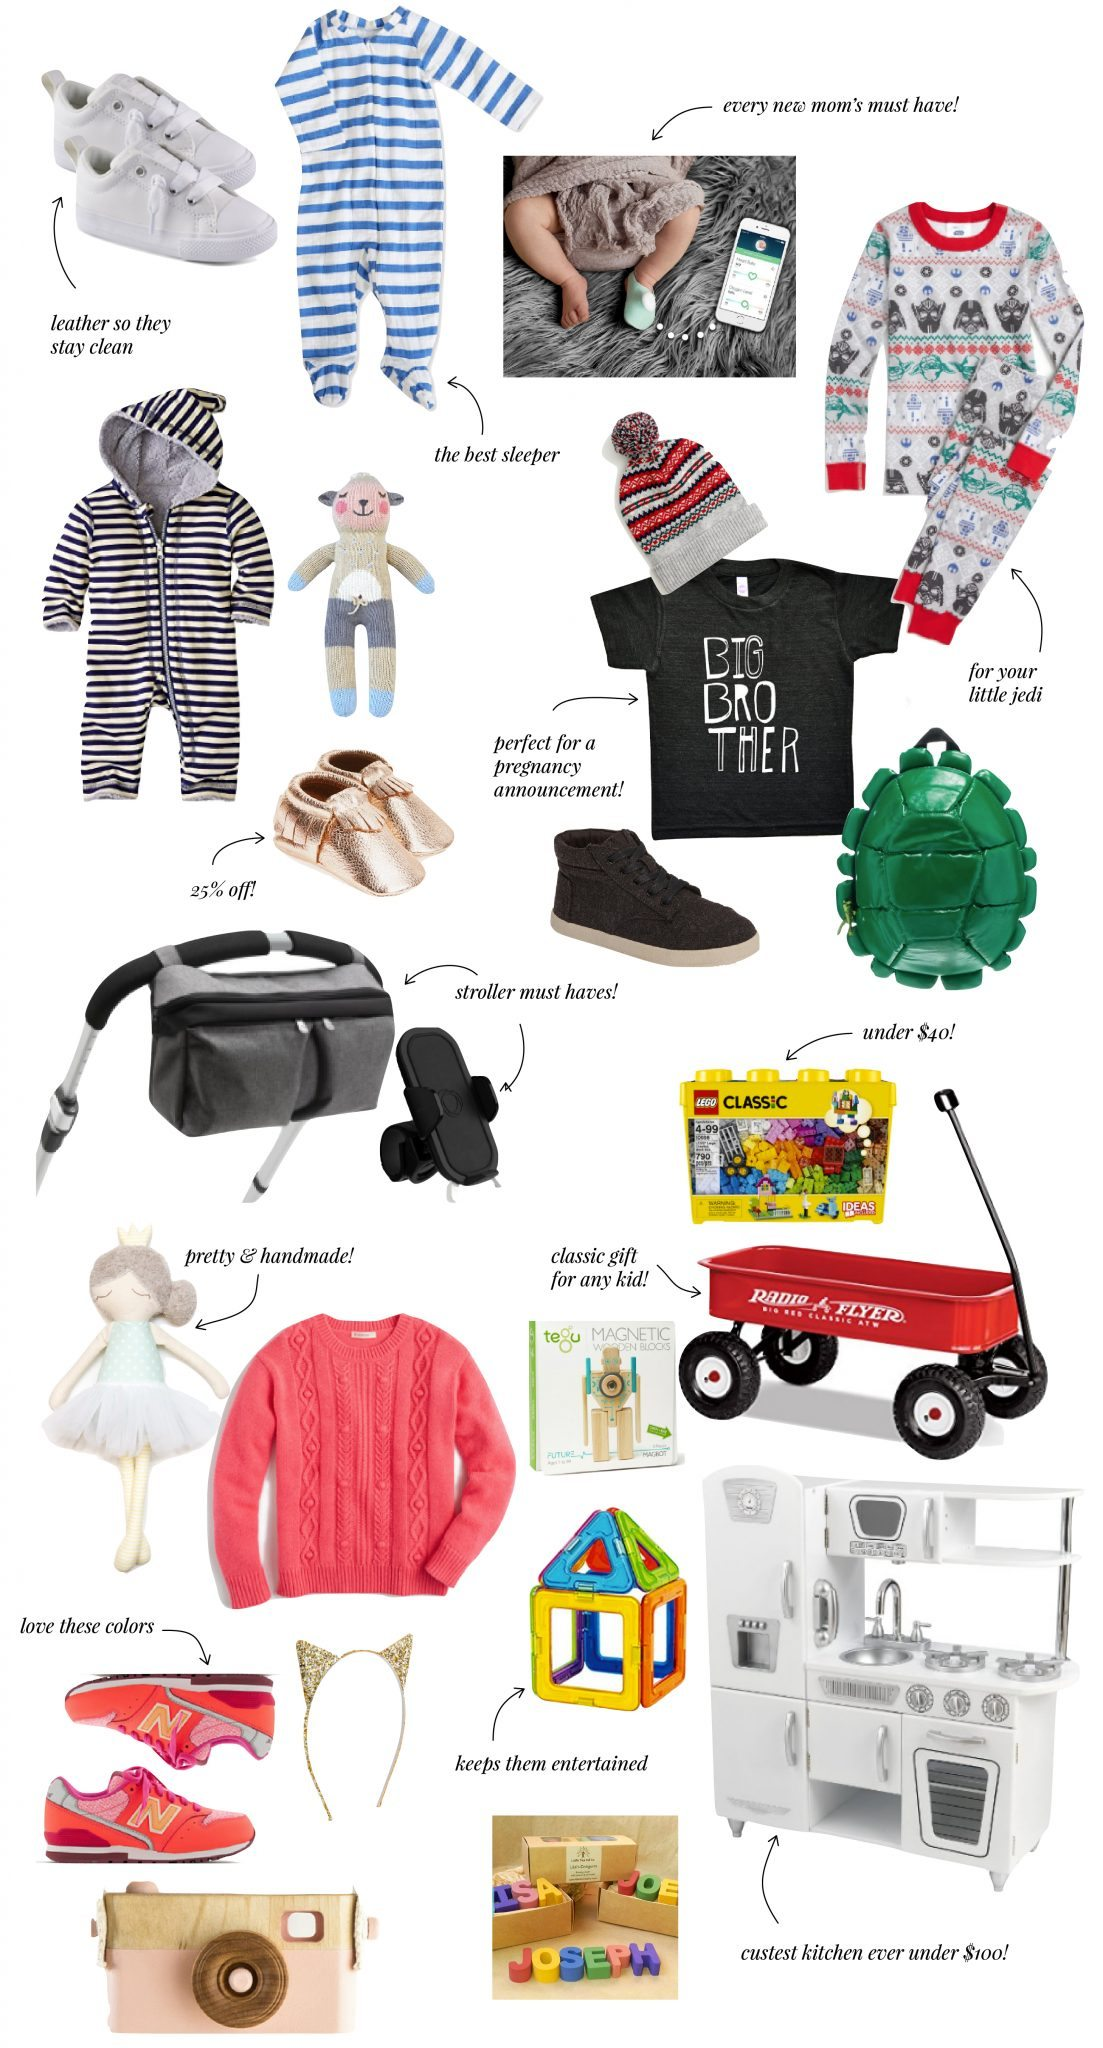 ELLE APPAREL HOLIDAY GIFT GUIDE 2016: BABY & KIDS